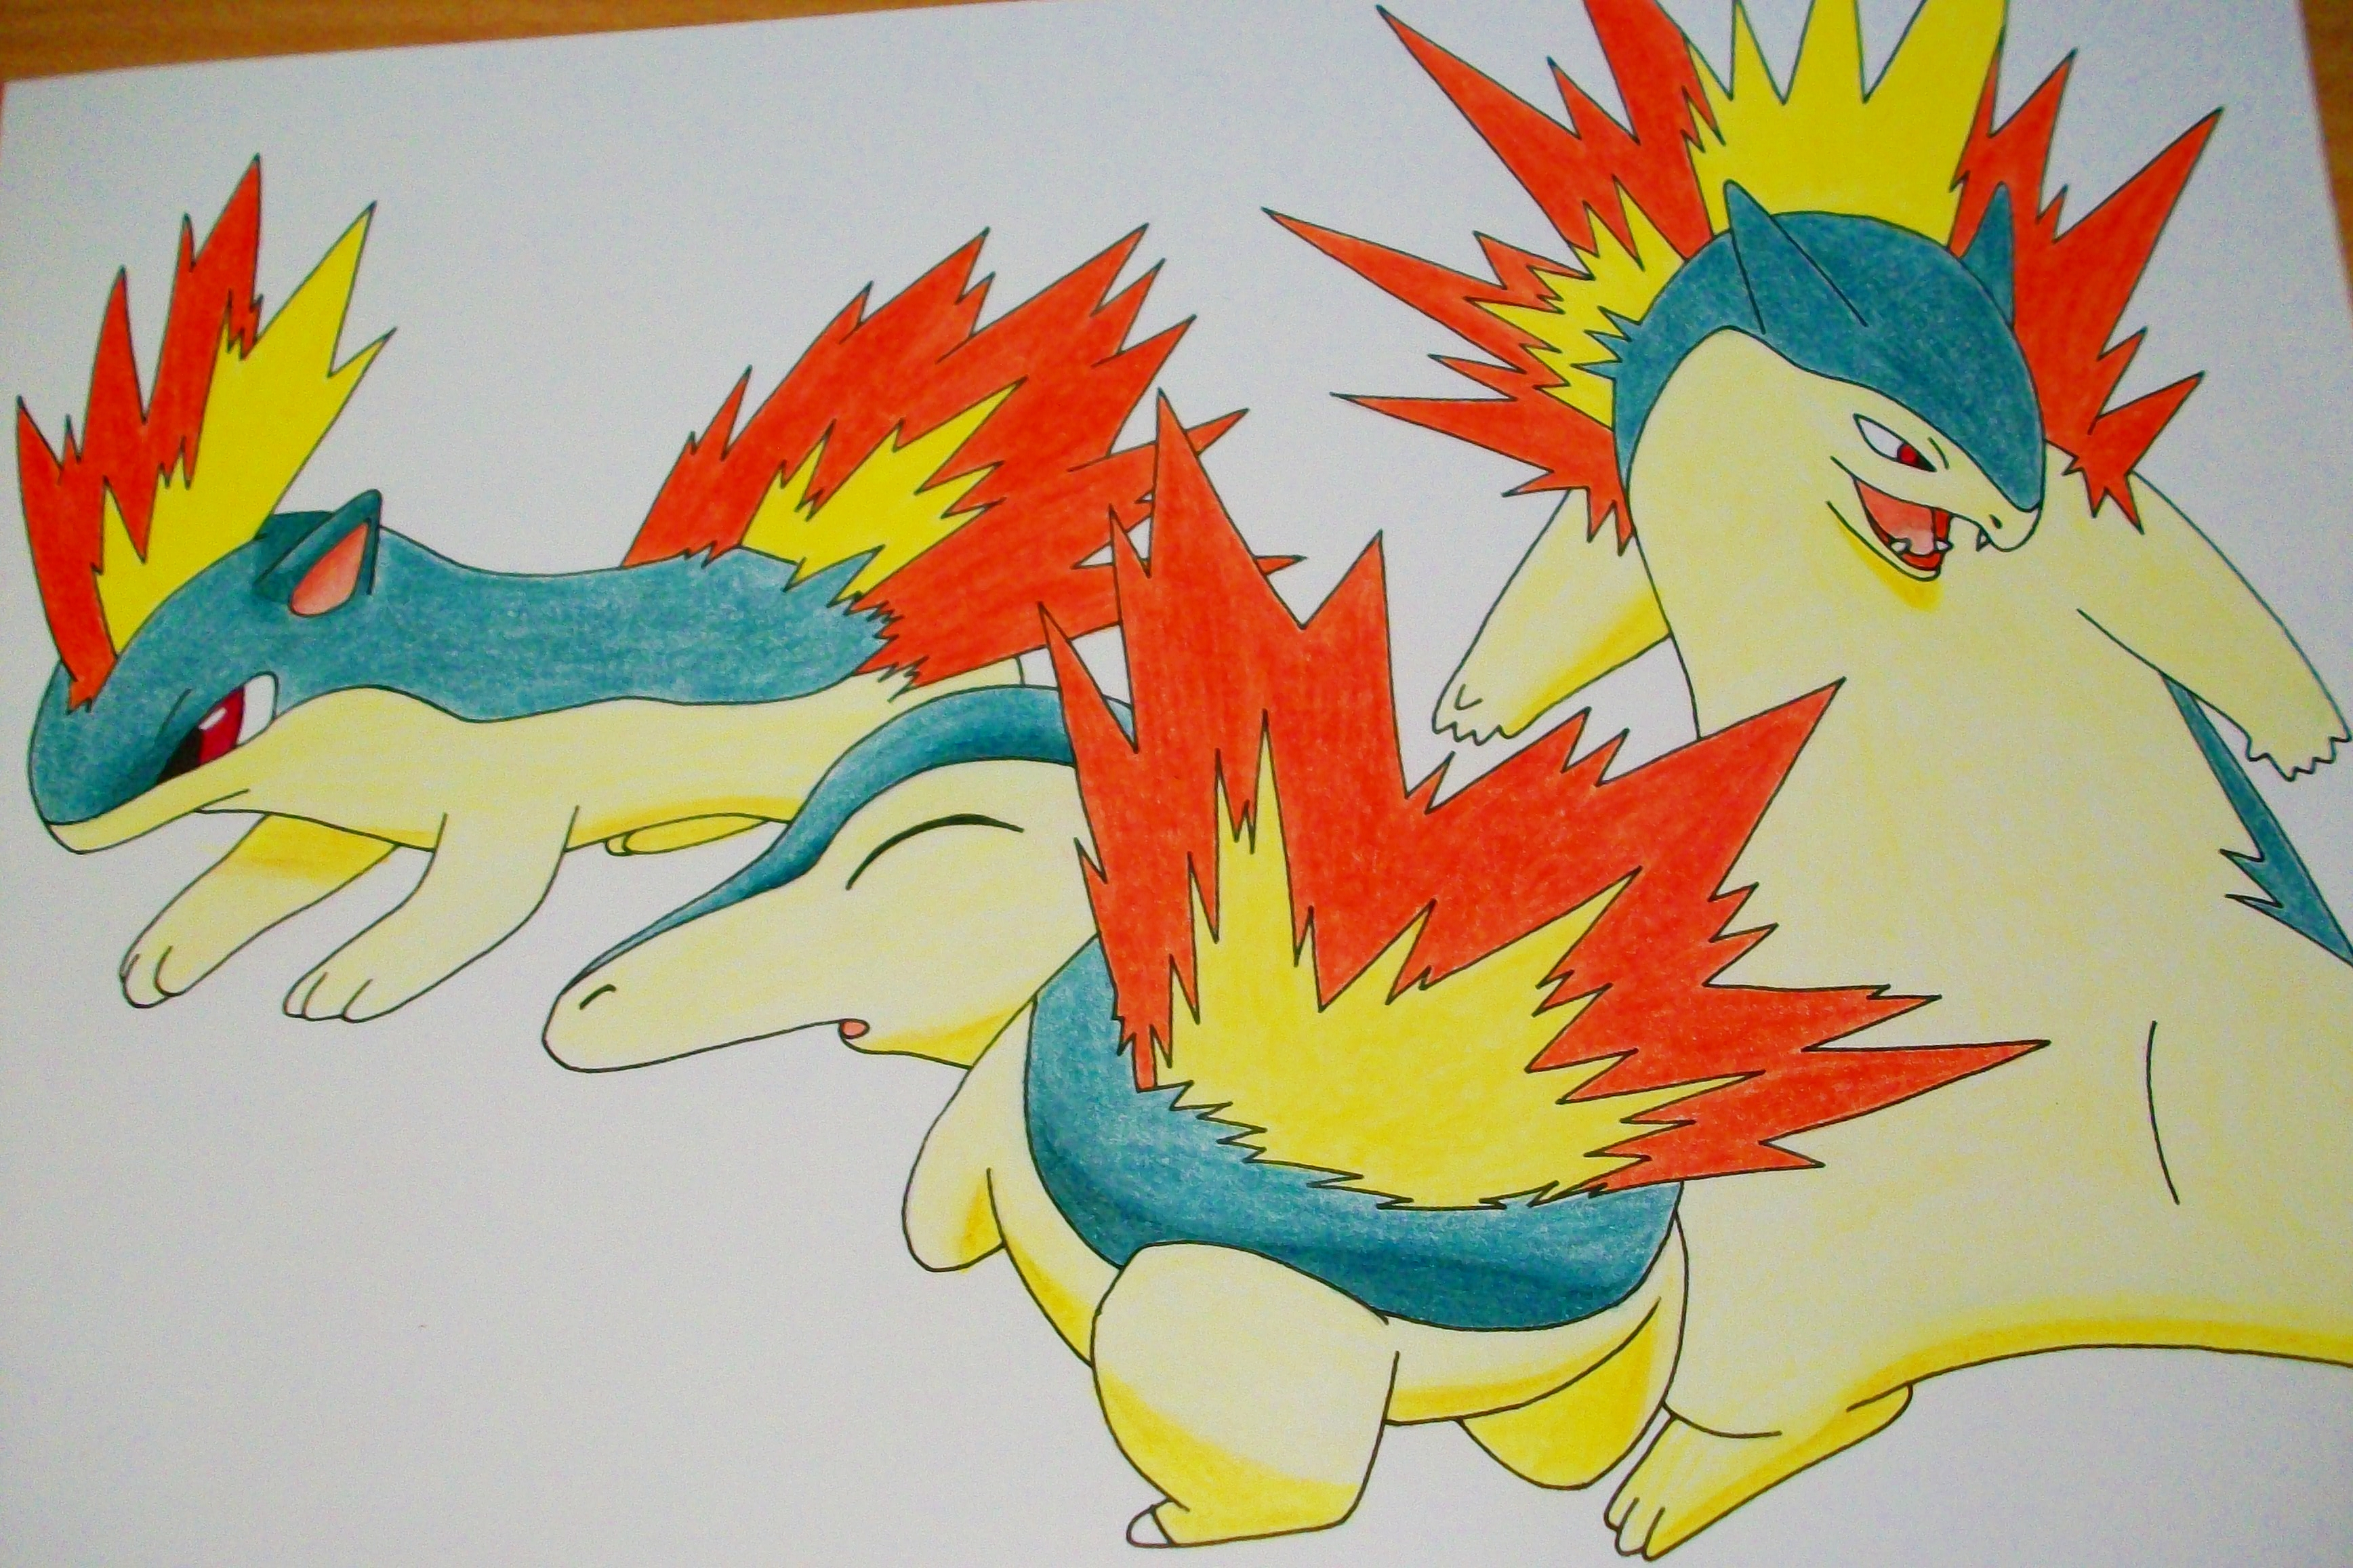 cyndaquil typhlosion quilava - photo #1